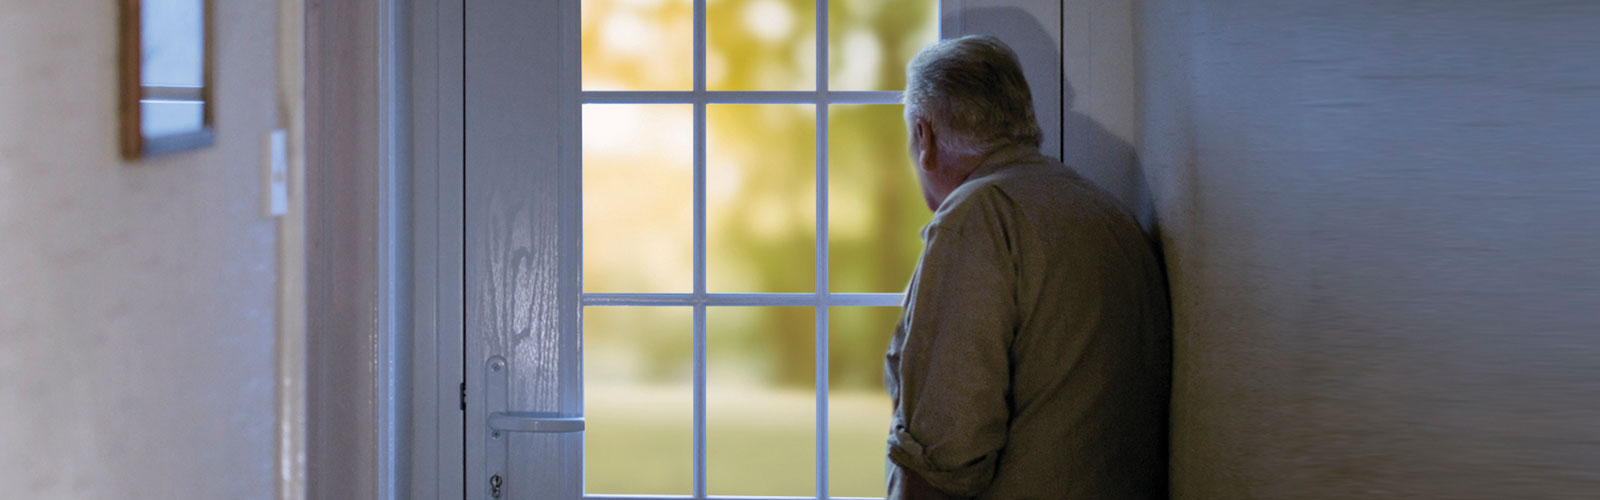 An older man with his back to the camera looks out of his  window longingly